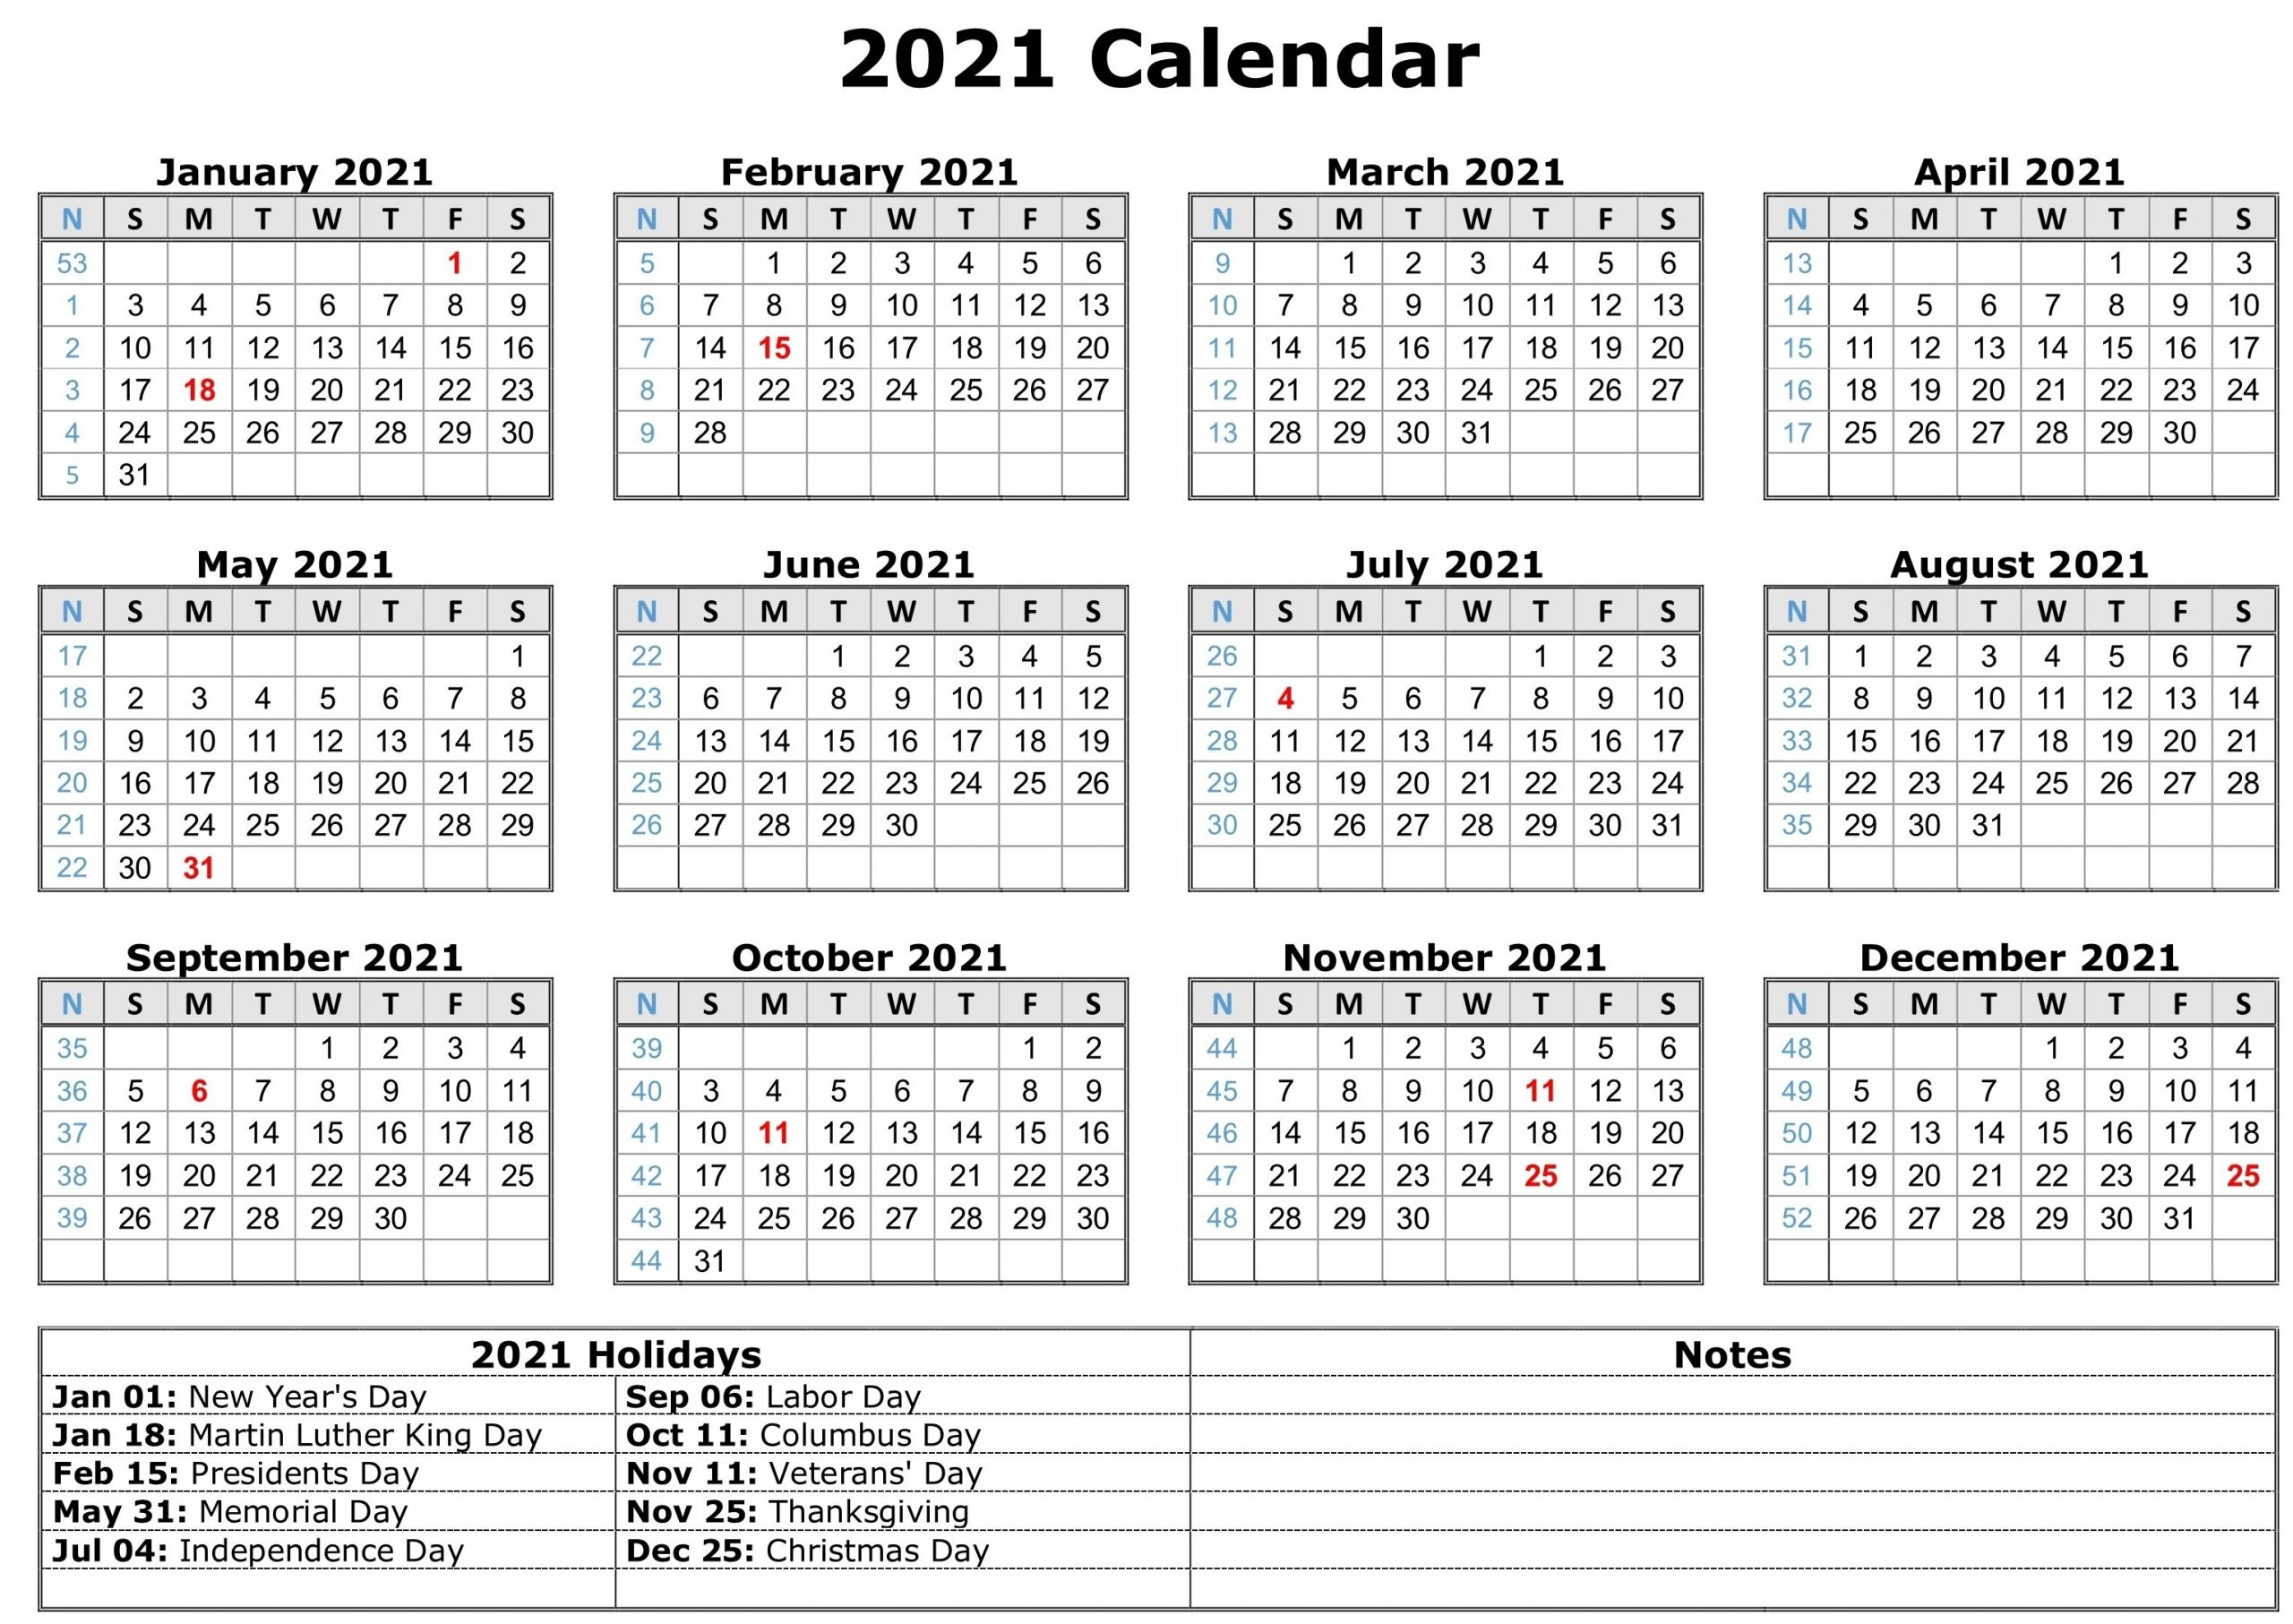 Take National Day Monthly Calendar 2021